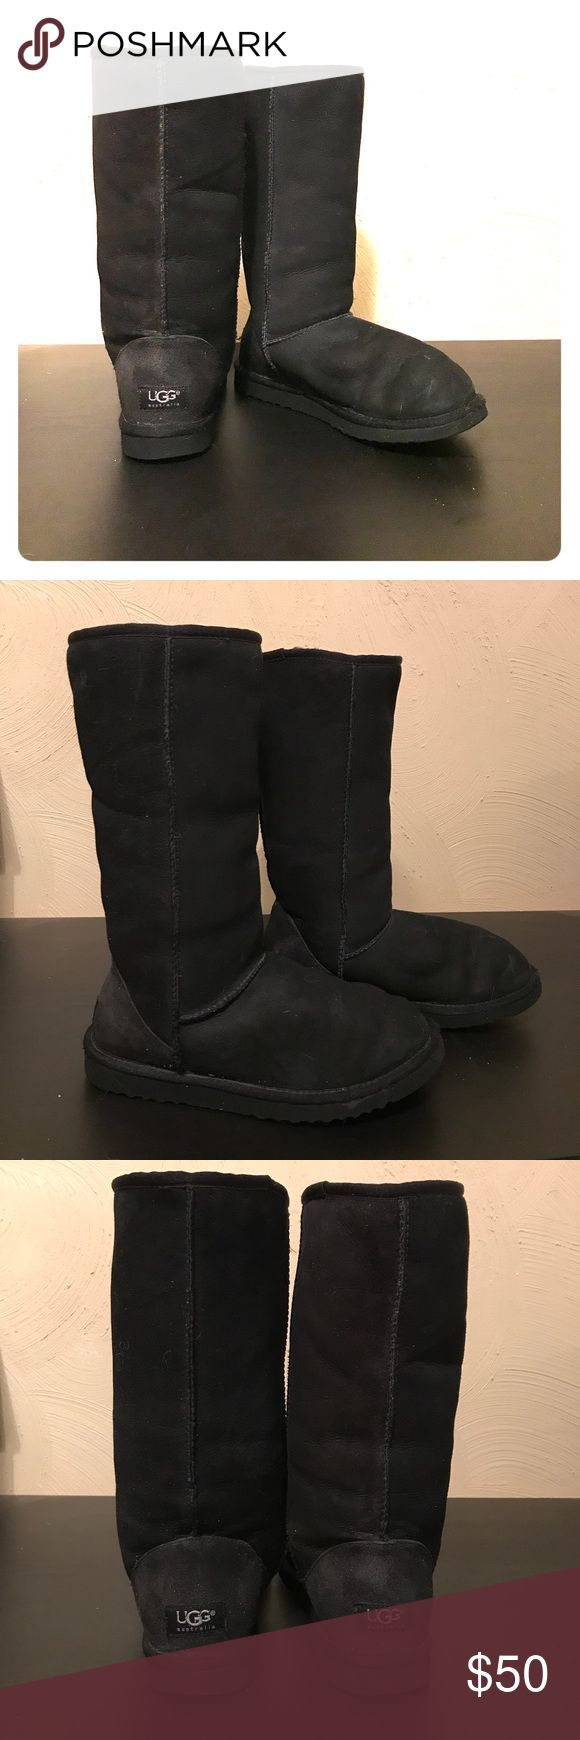 UGG Classic Tall Women's Boots in Black These boots are in great condition and we're only worn a handful of times. Pretreated with suede protector and water repellant. UGG Shoes Winter & Rain Boots